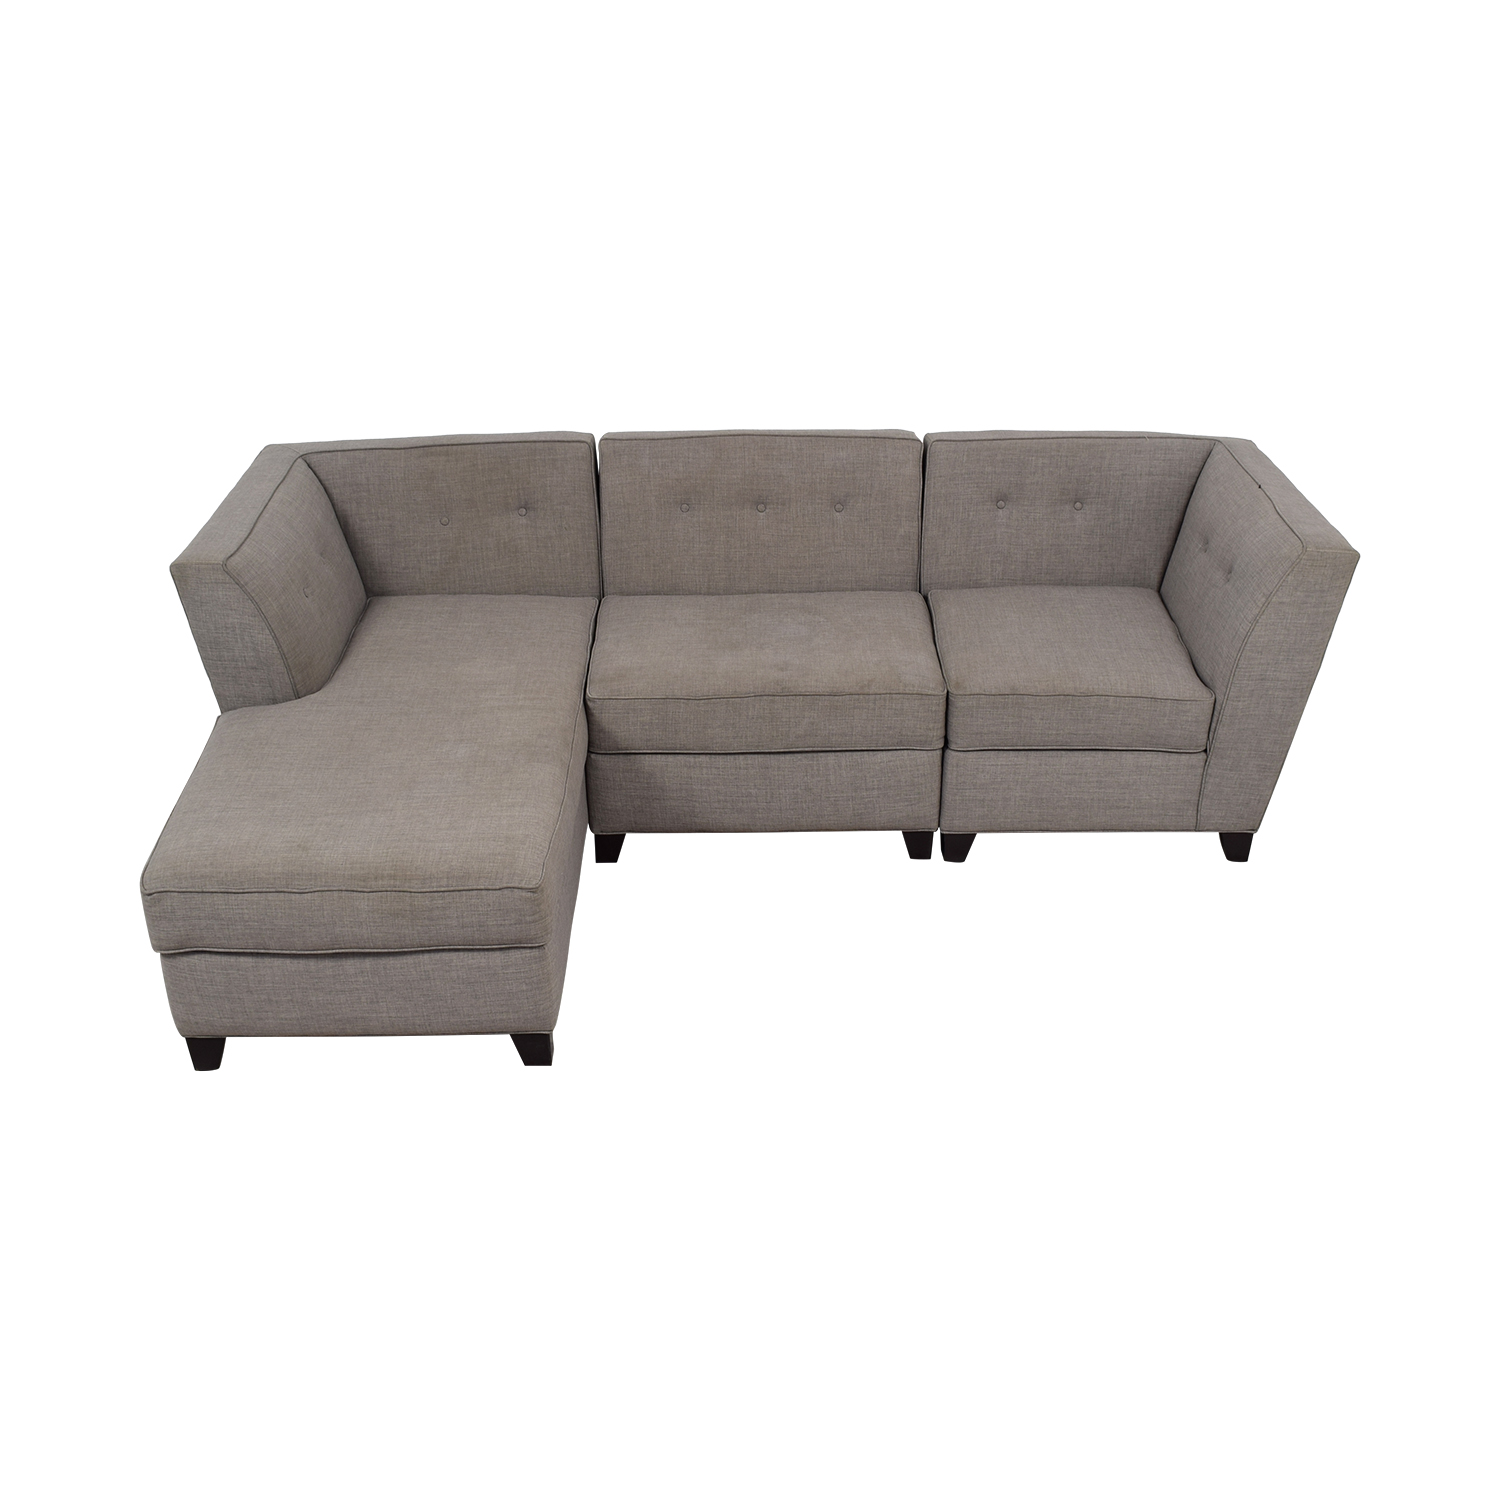 Roxanne Roxanne Grey Performance Fabric Chaise Sectional nj